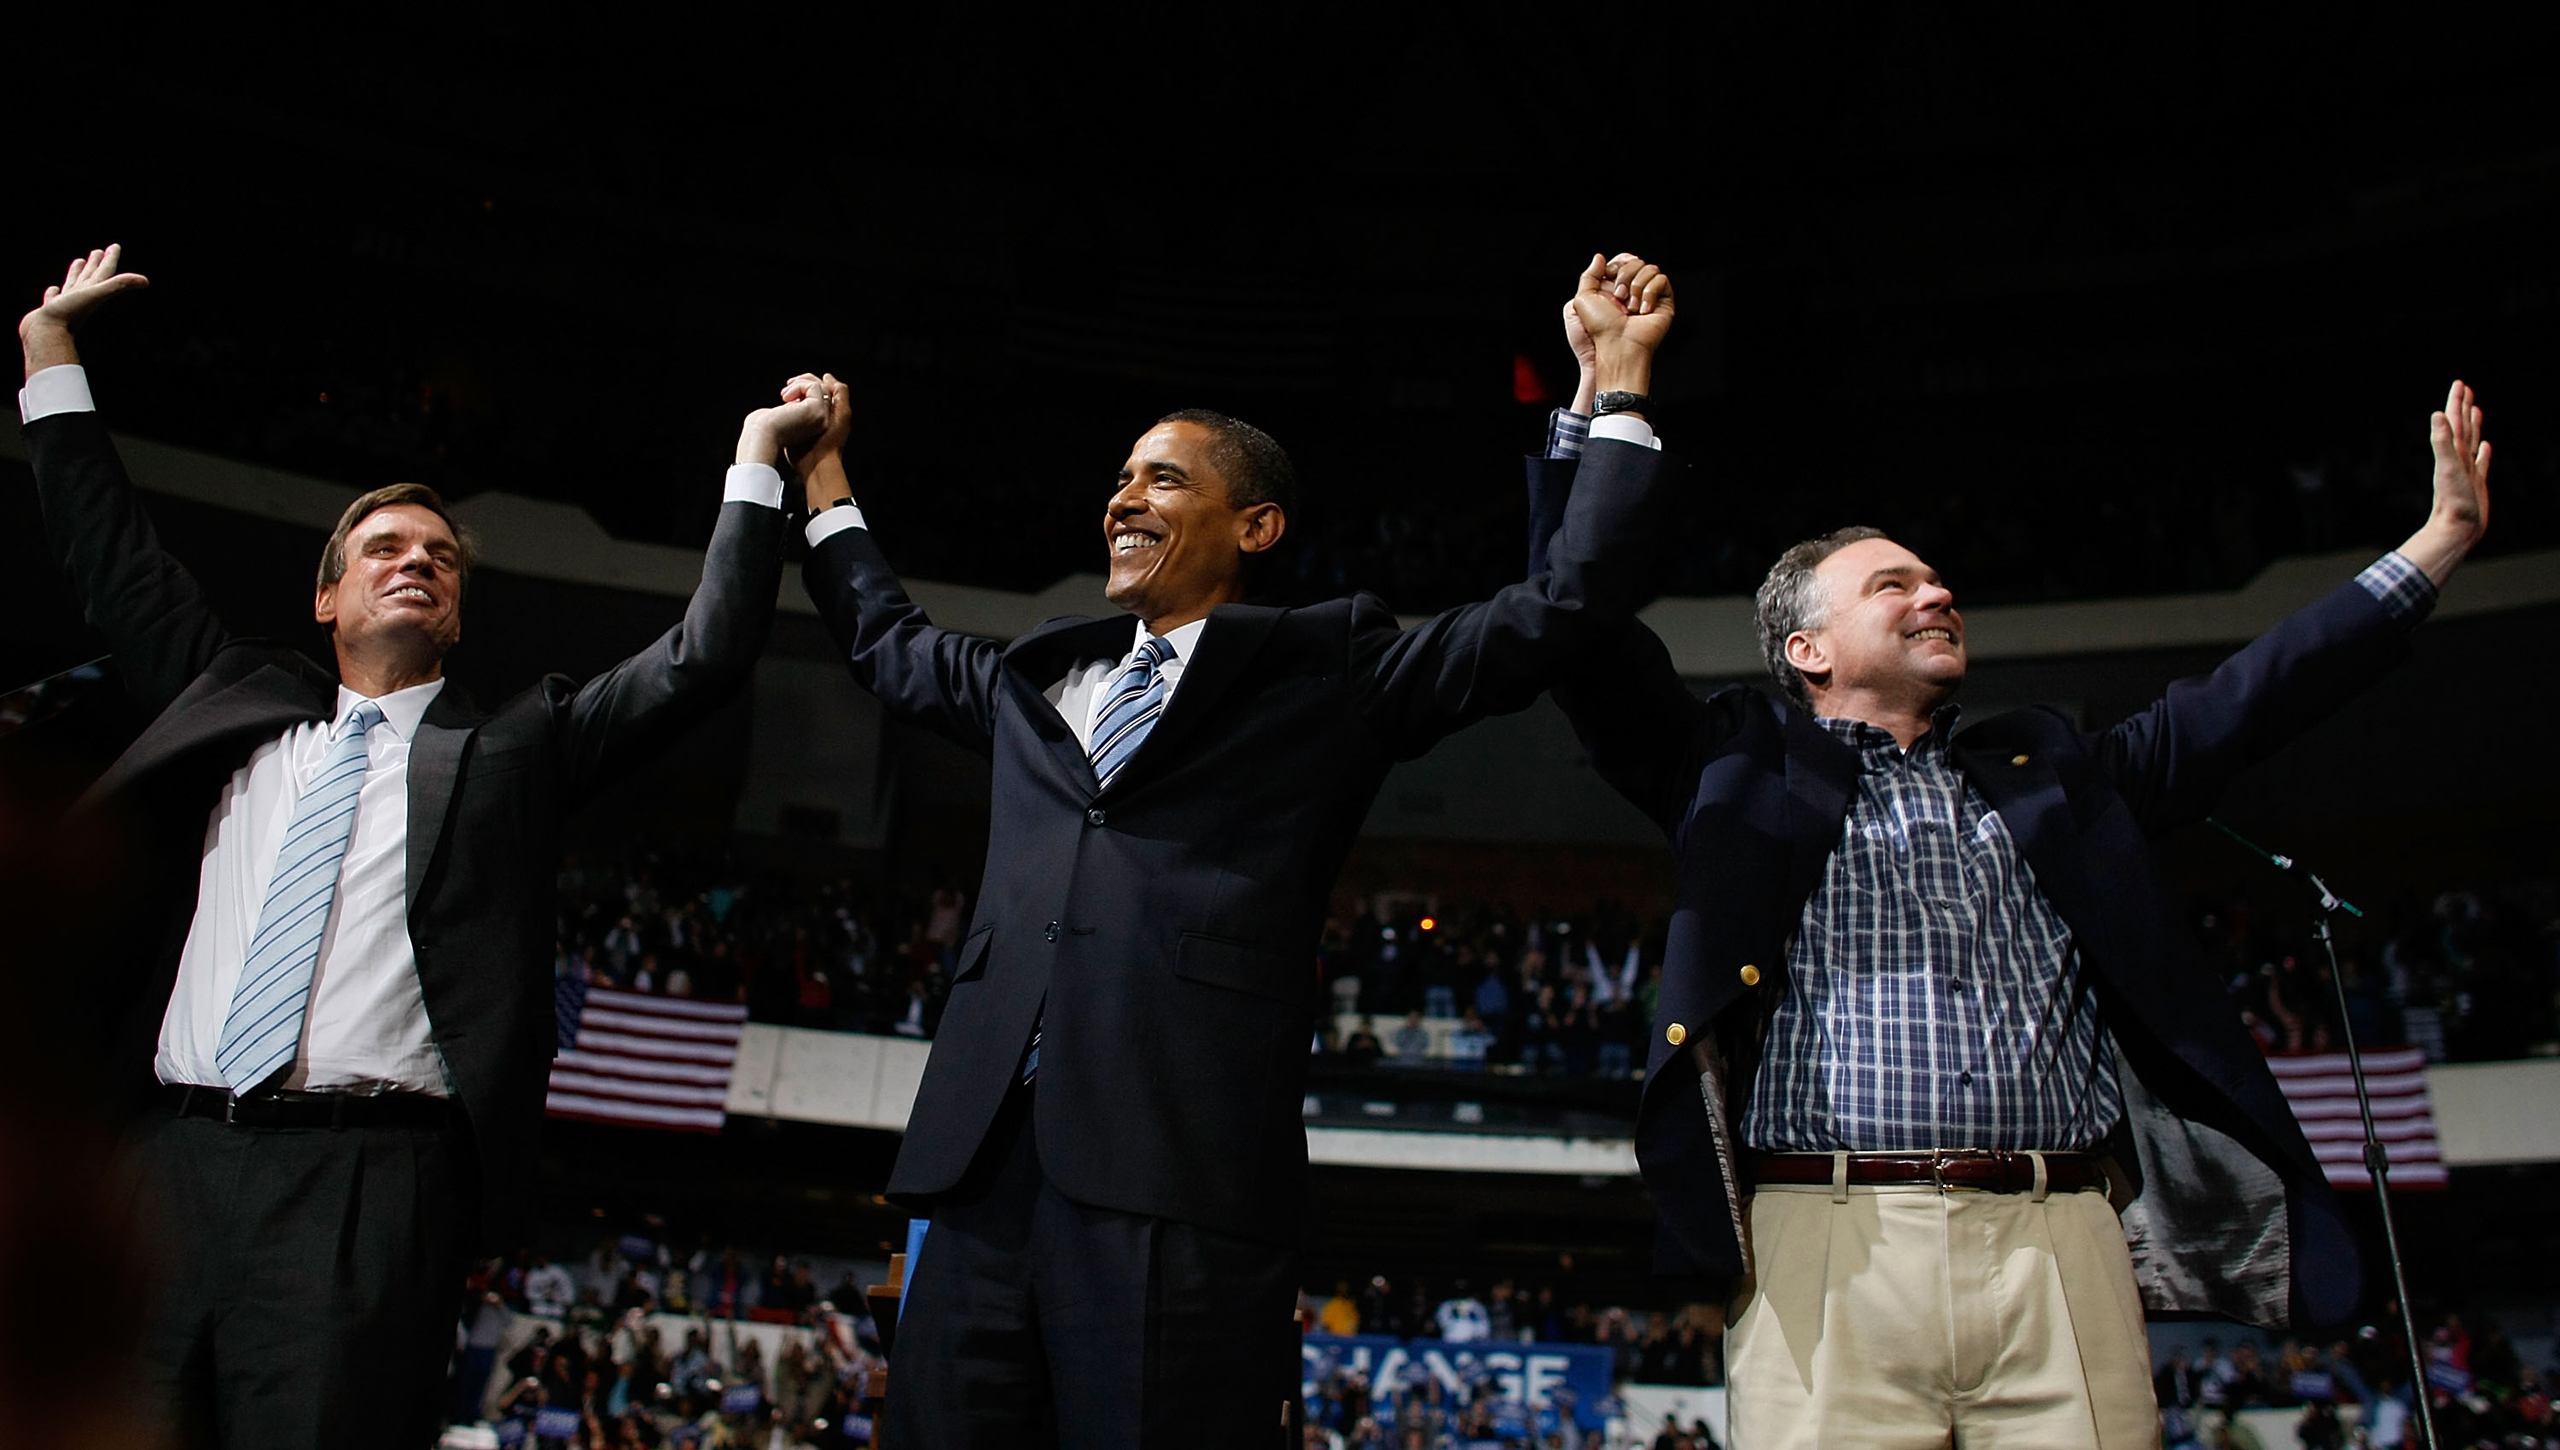 Mark Warner, Democratic presidential nominee U.S. Sen. Barack Obama and Virginia Governor Tim Kaine raise their arms together during a campaign event at the Richmond Coliseum on Oct. 22, 2008.